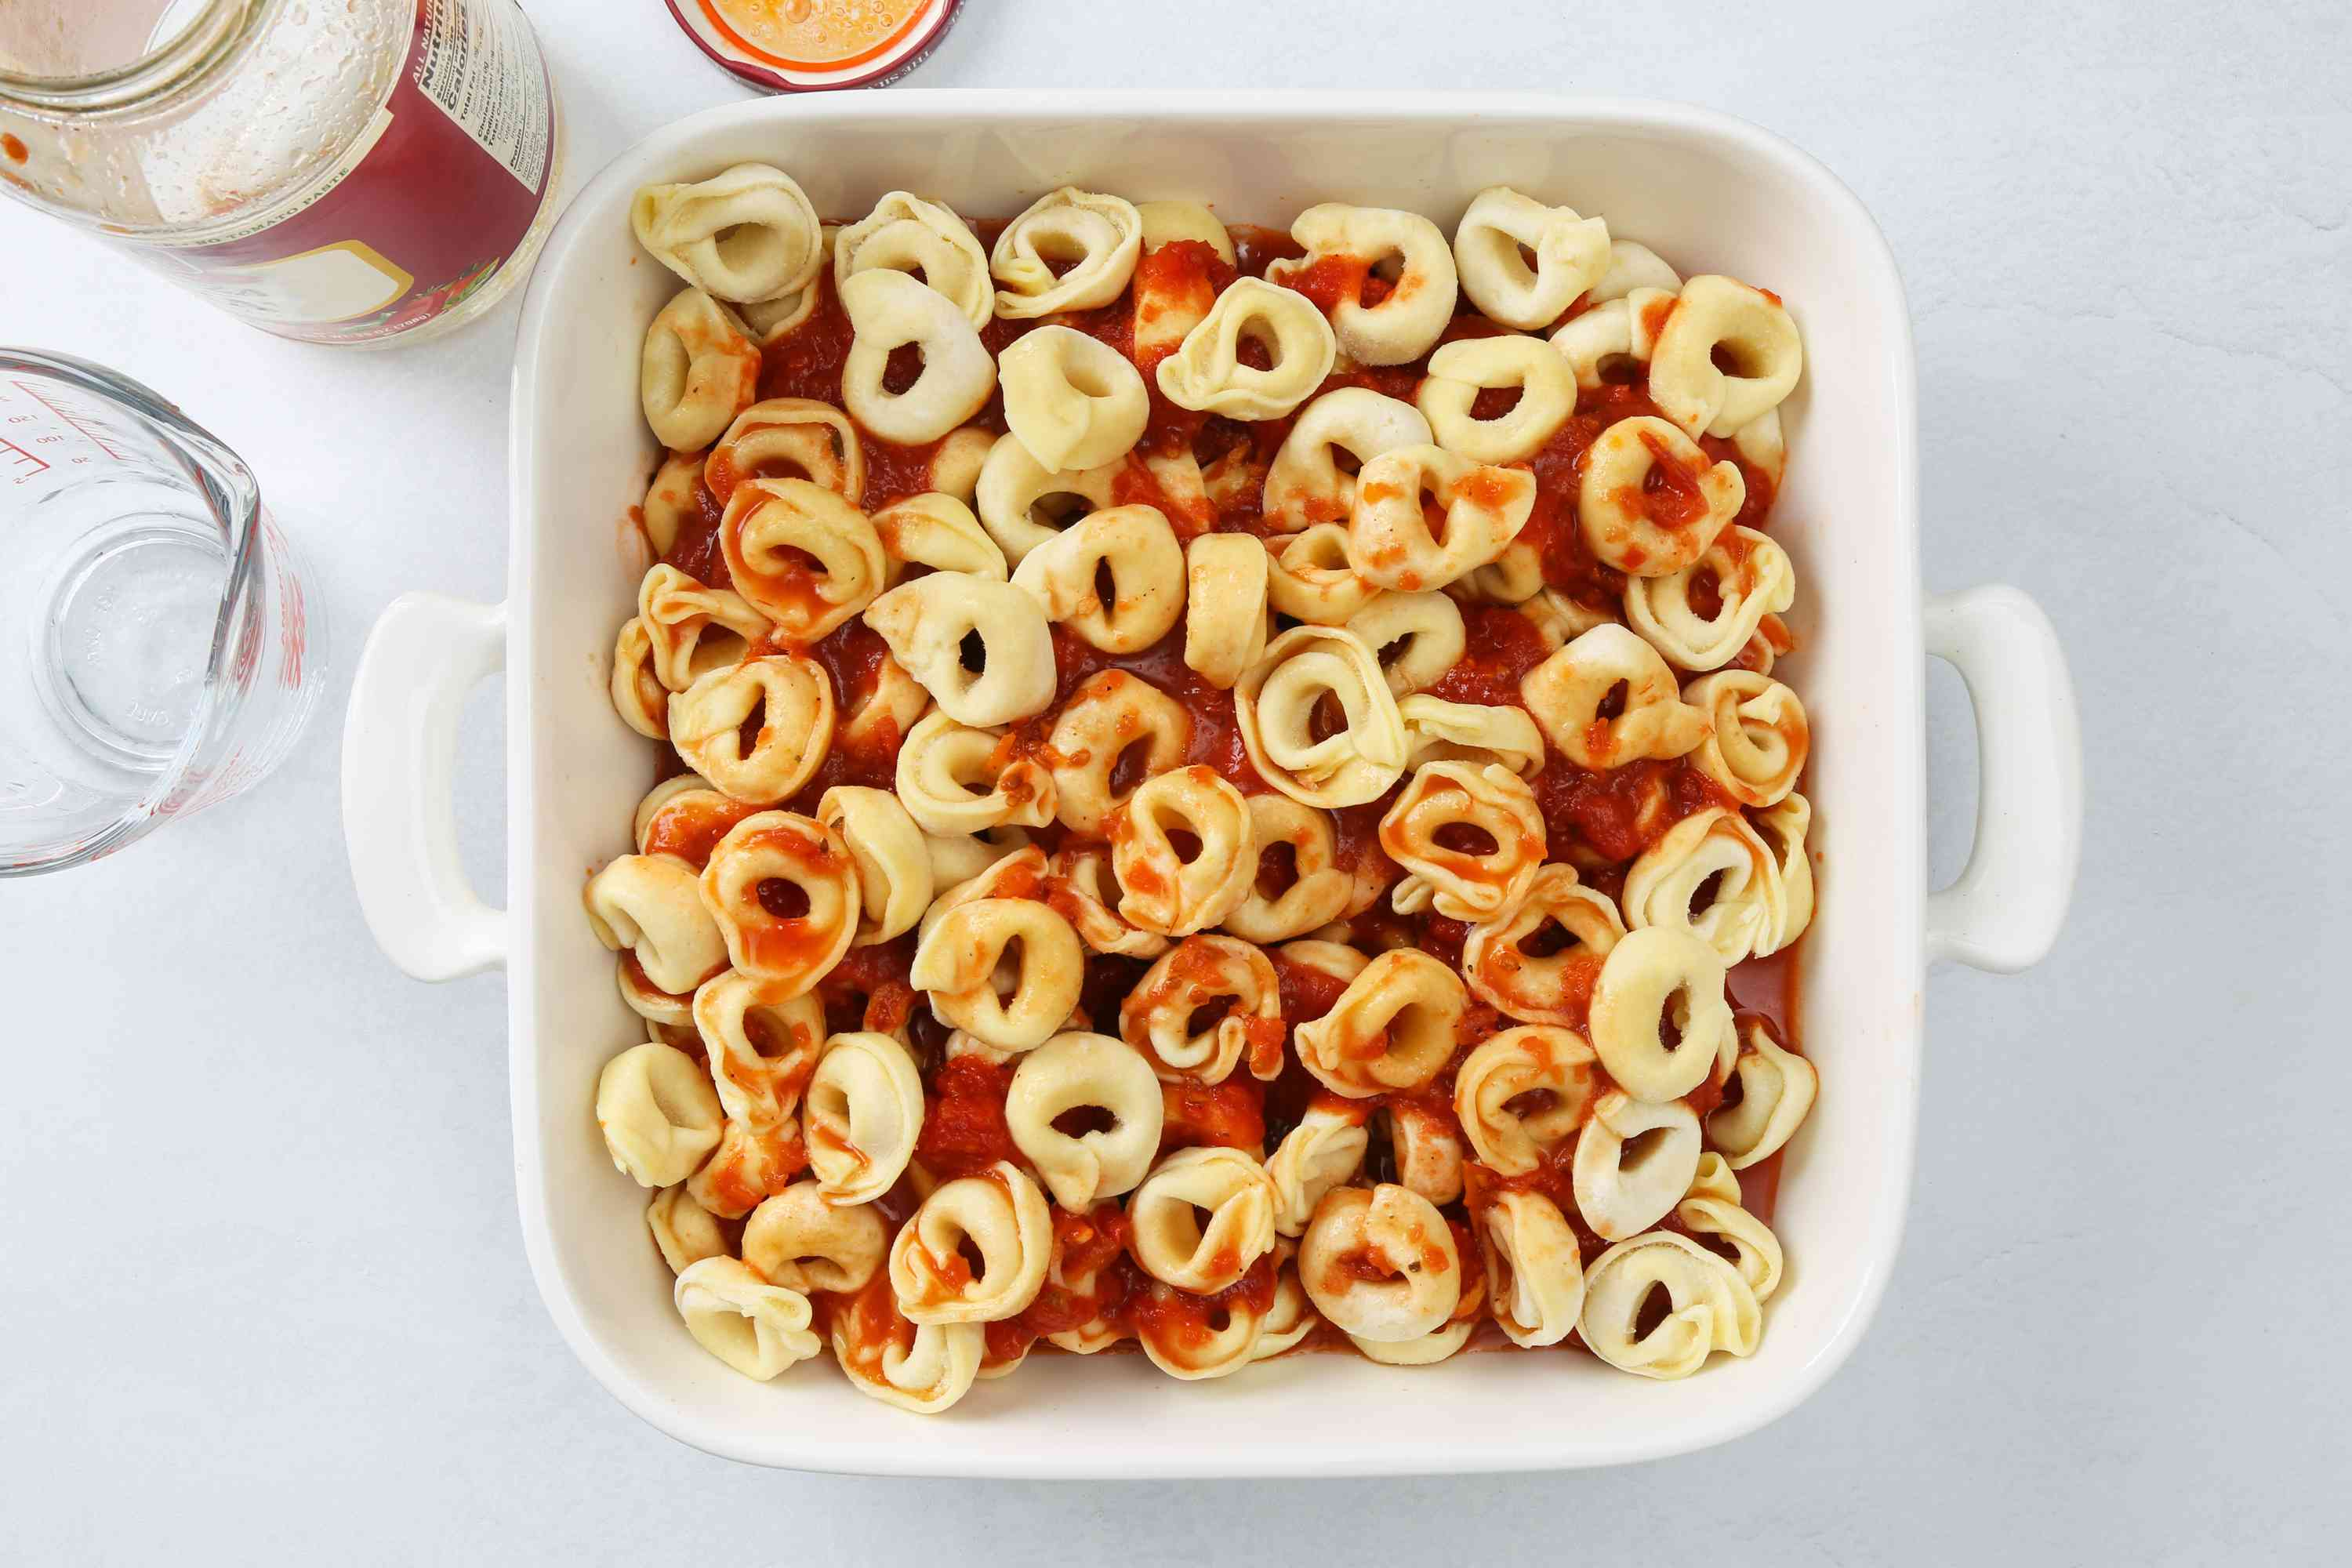 frozen tortellini and the spaghetti sauce in a baking dish